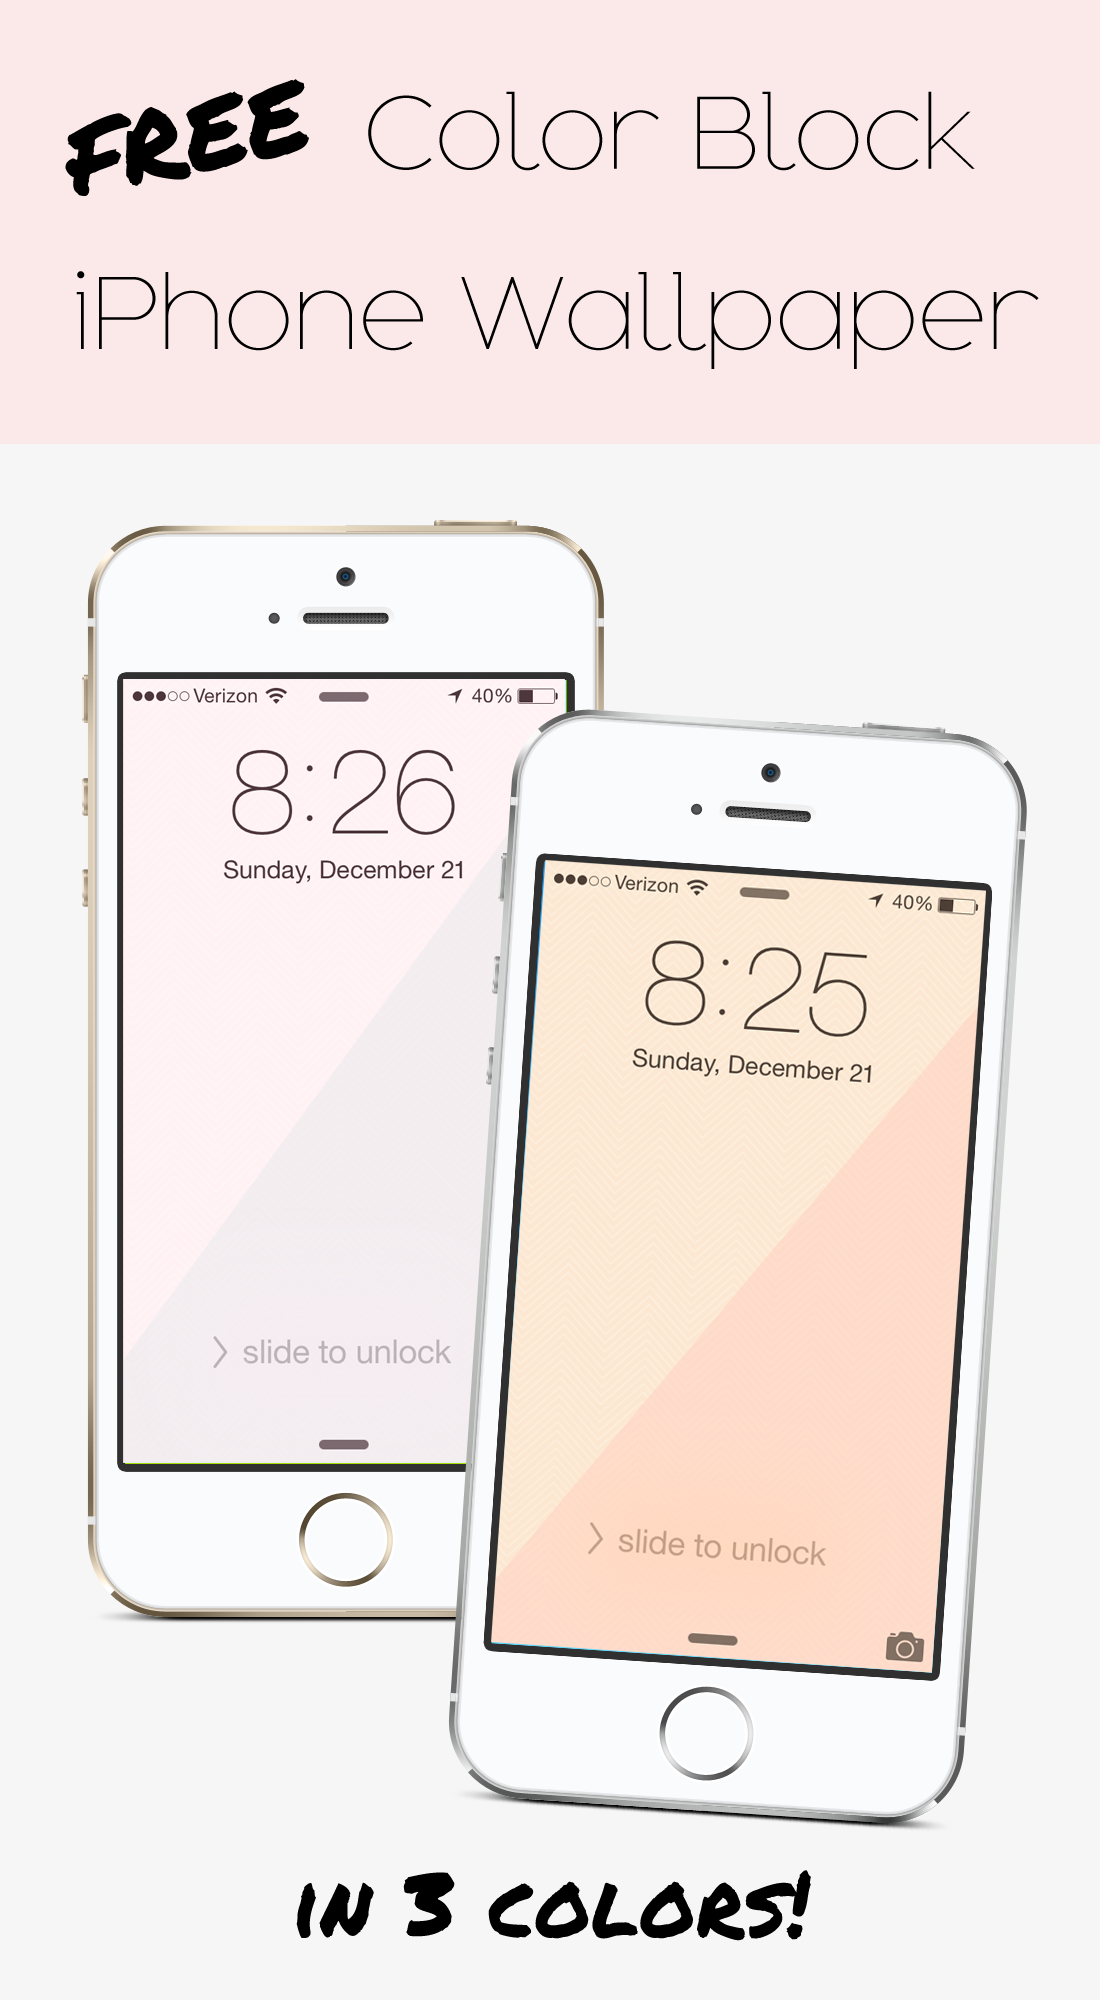 Free color block iPhone wallpapers in 3 different colors